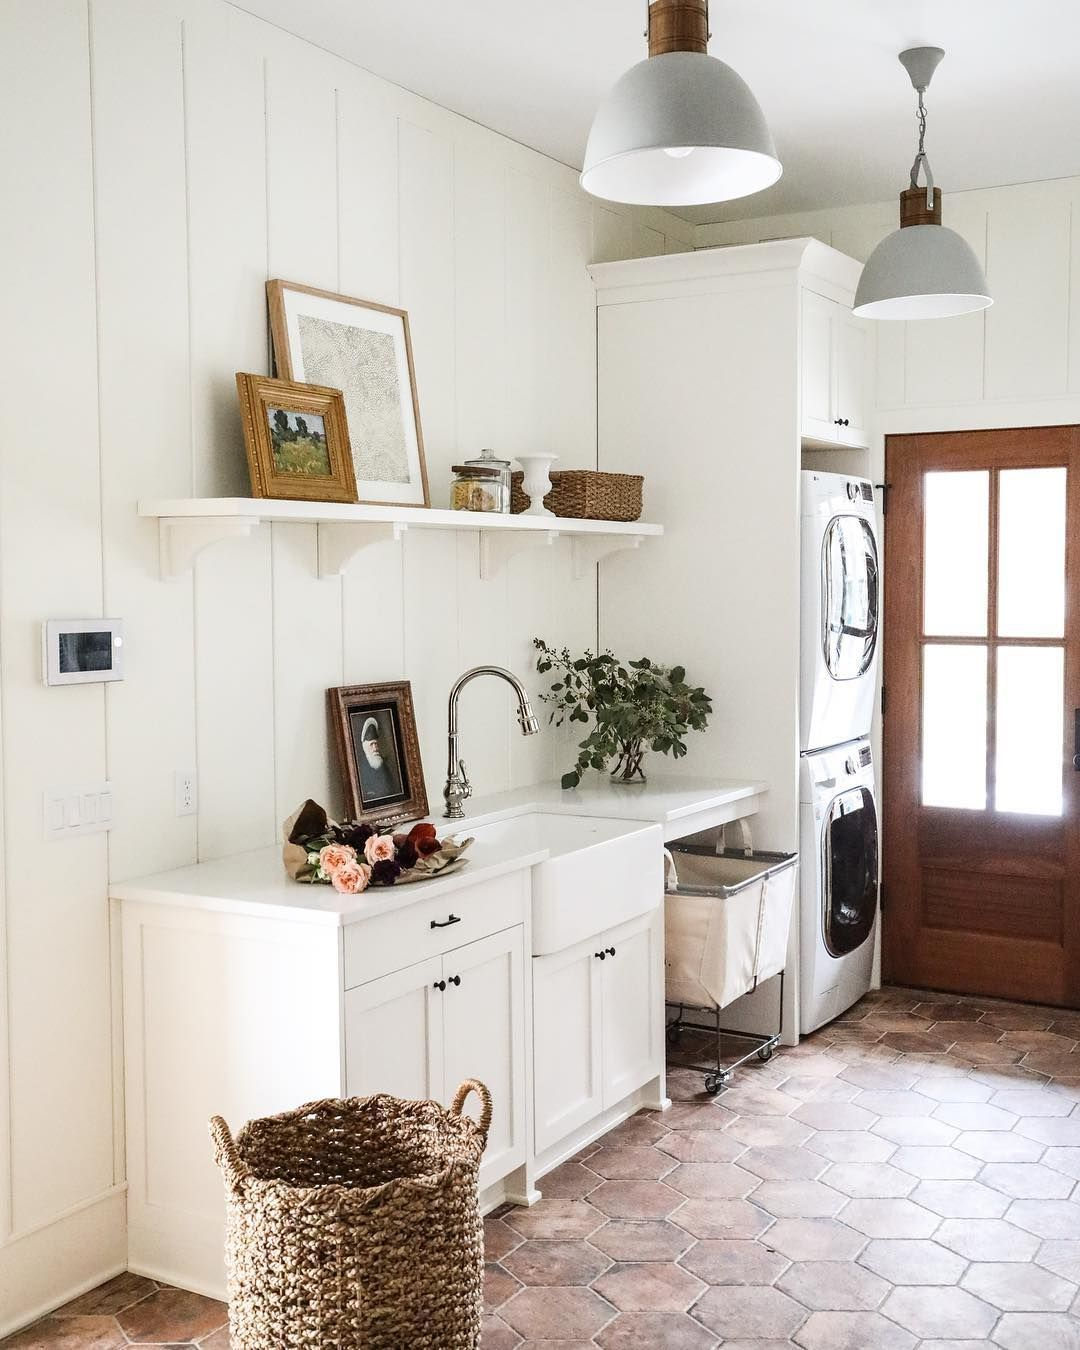 From The Pendant Lights To Tile Floor We Re In Love With This Mudroom E Parkandoakdesign Thecottagejournal Designinspo